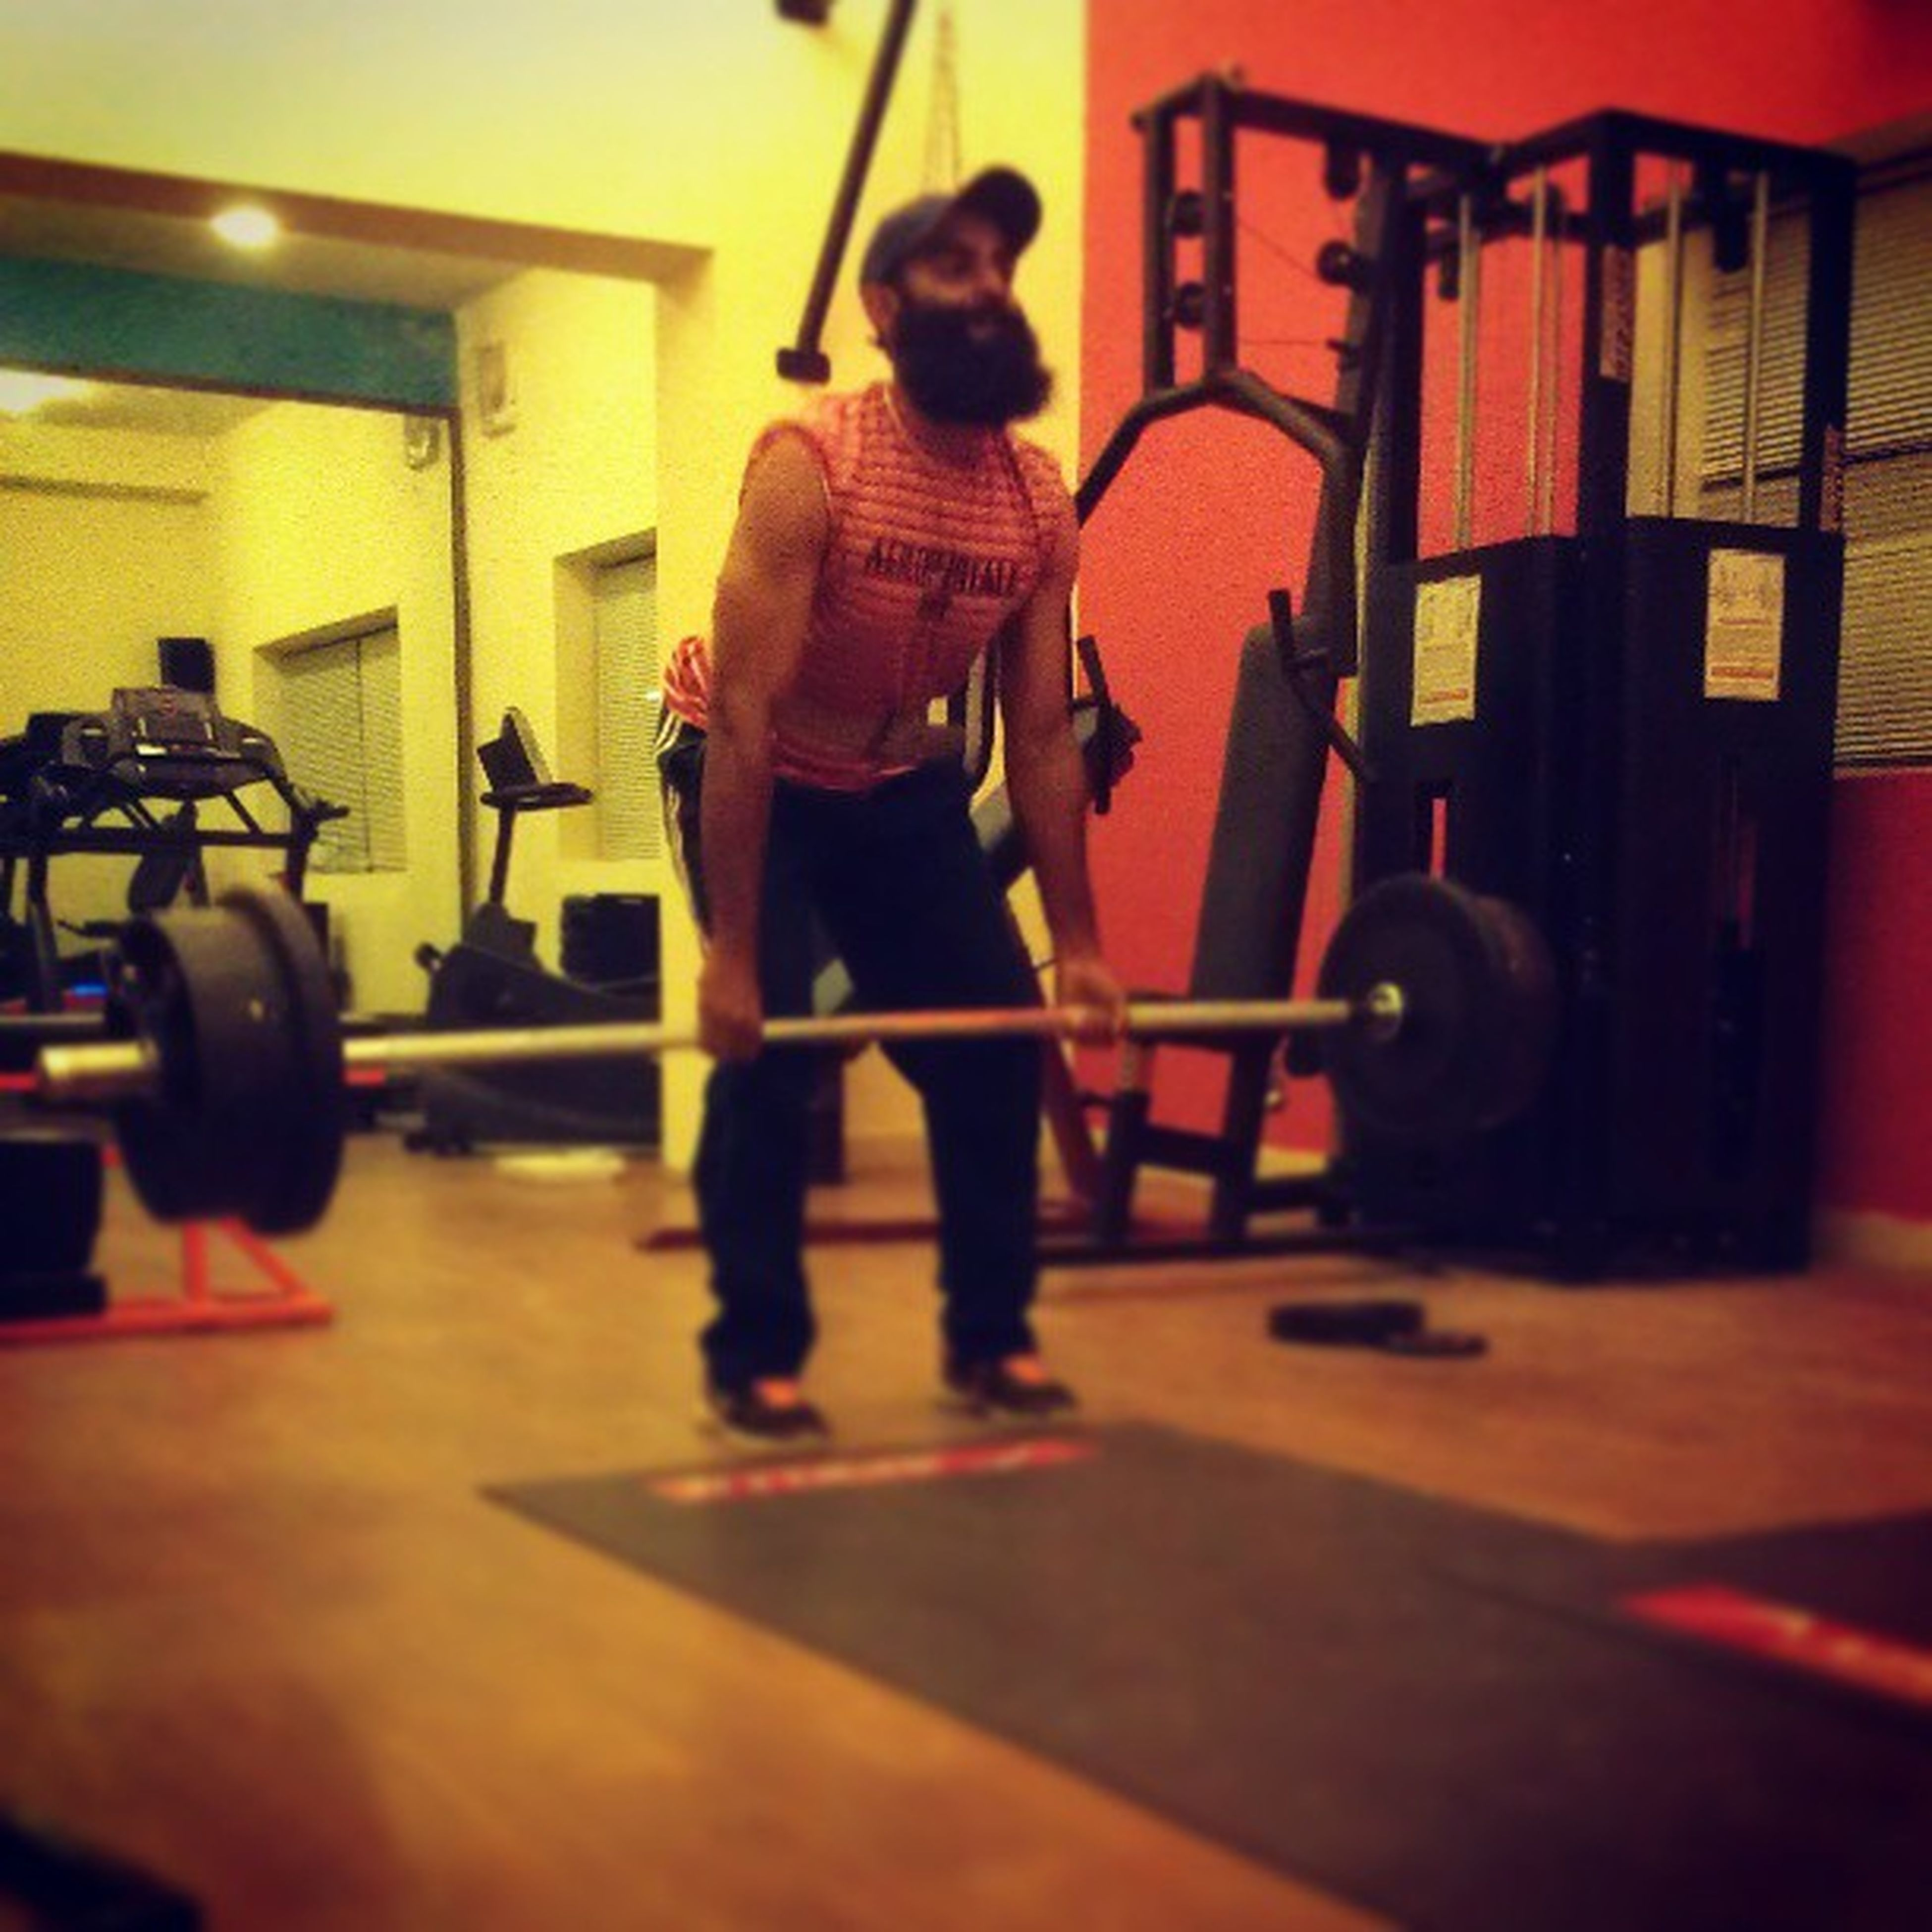 Deadlifting 210lbs Deadlifts After Backsquats and Militarypress crossfit crossfittotal cft extrememotivation workout transformation story gym newlook